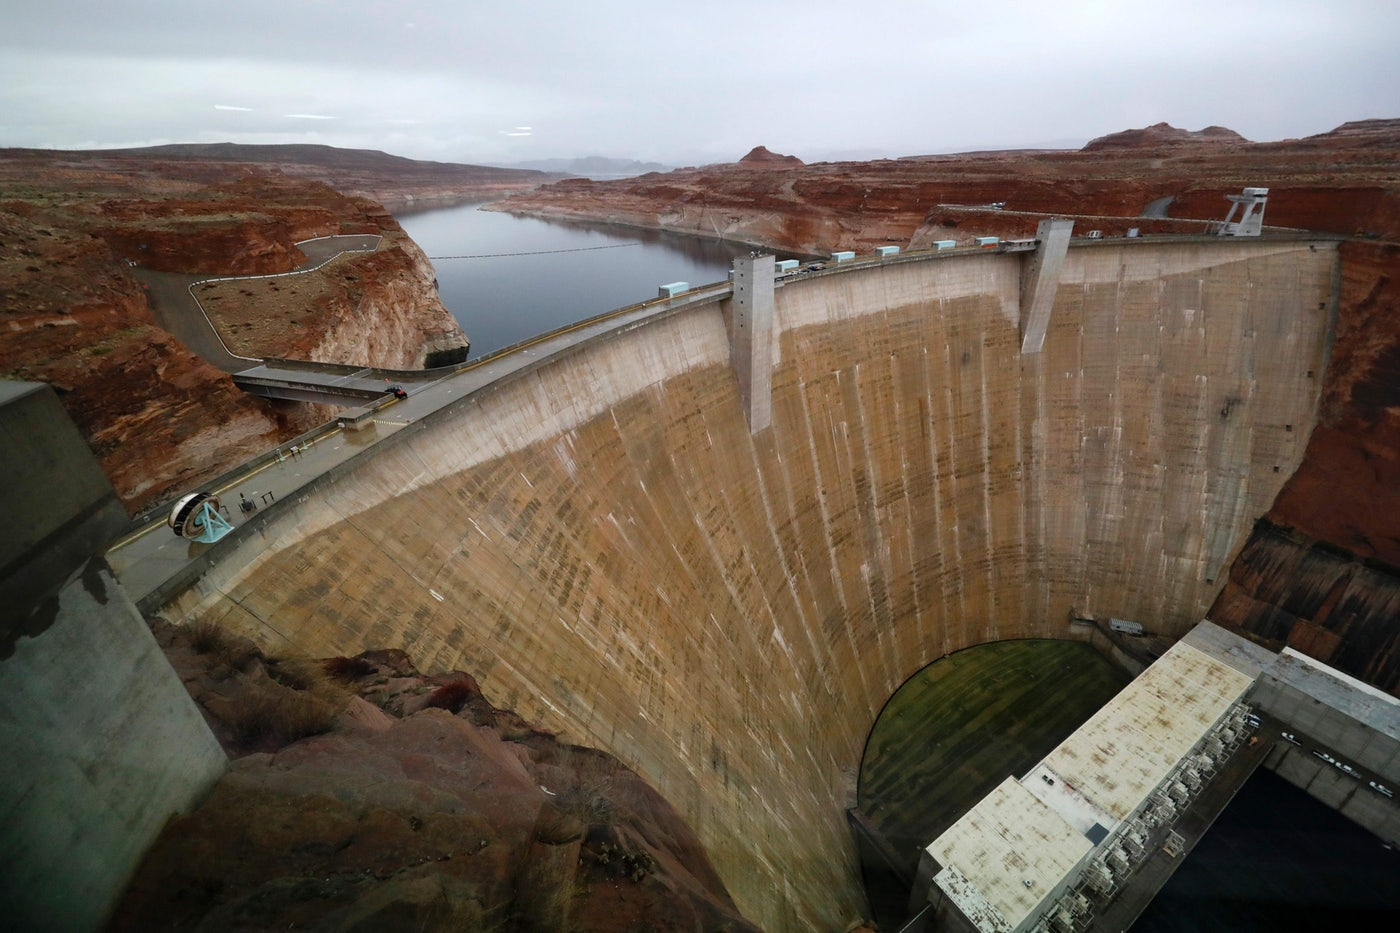 Glen Canyon Dam at Lake Powell, a man-made reservoir along the Colorado River in Utah.